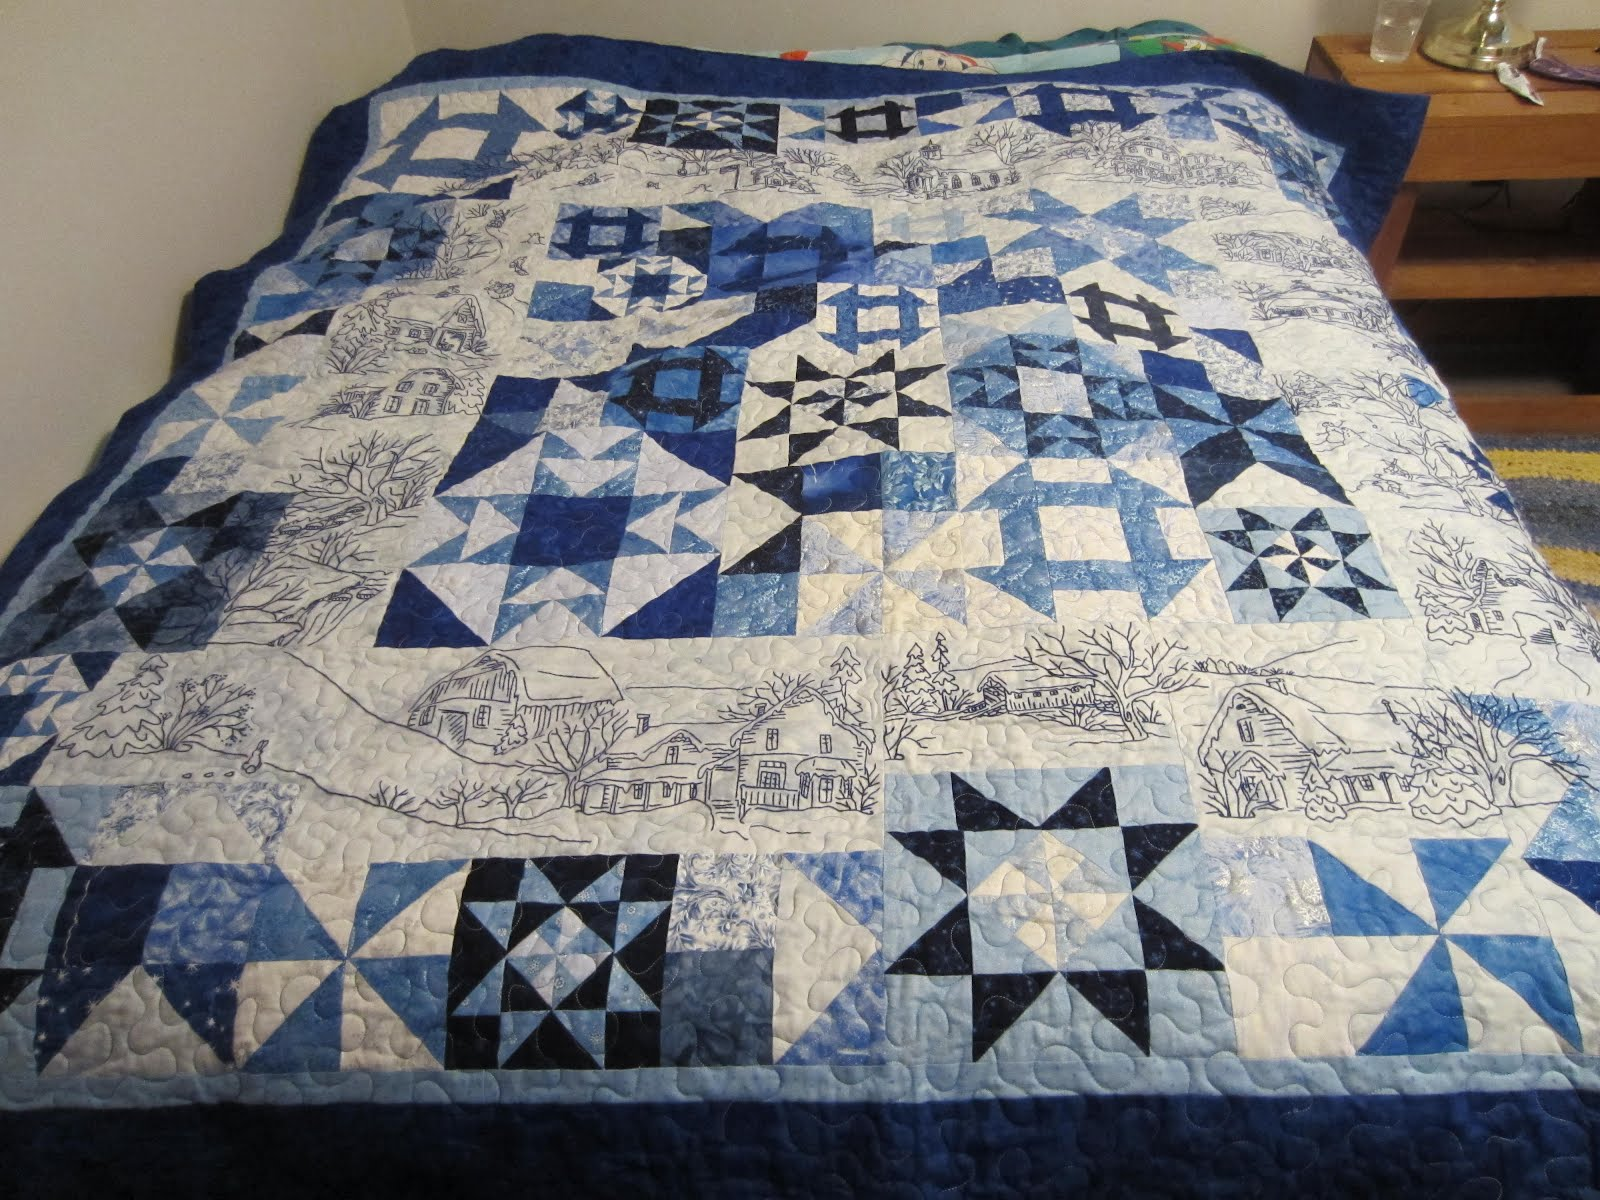 Quilts Quilts and More Quilts !!: Winer Snow Days : snow quilts - Adamdwight.com